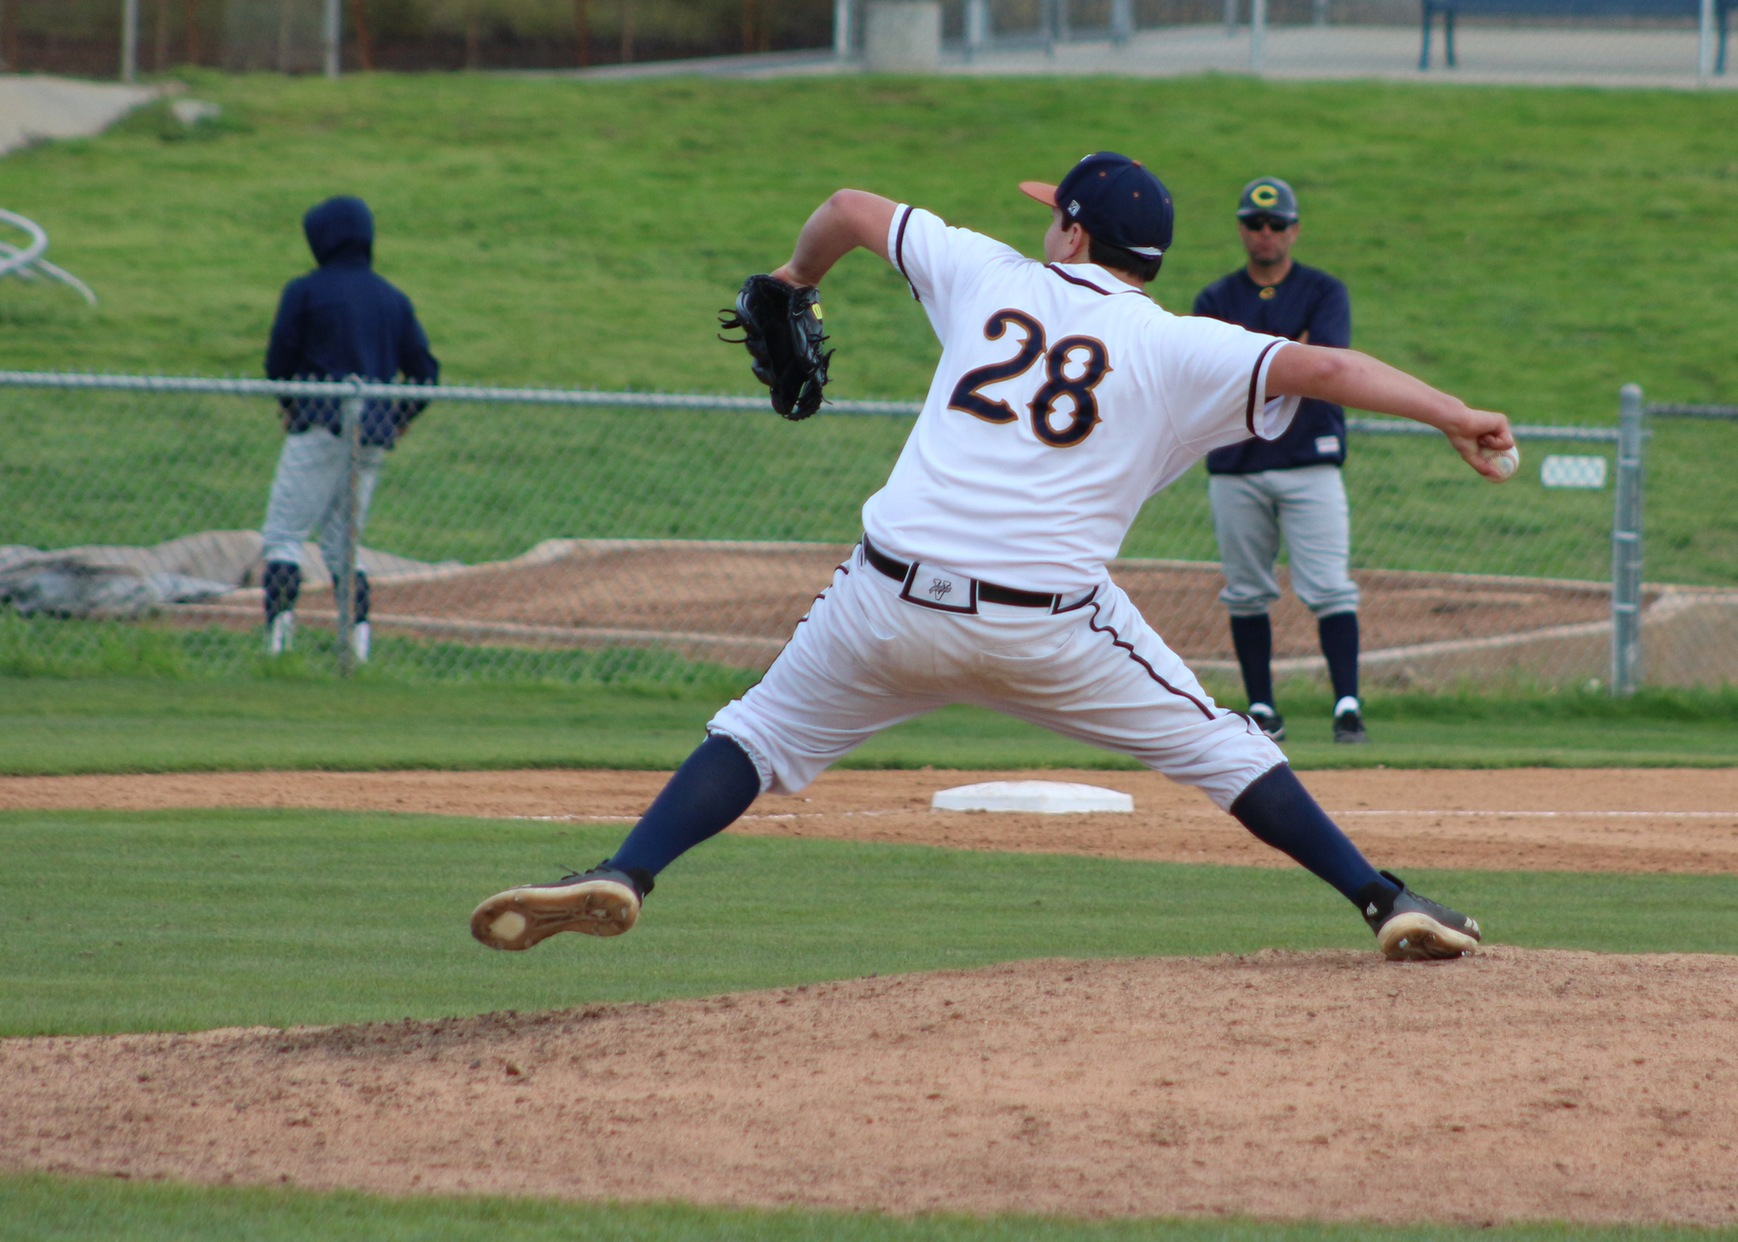 Juan De La Torre steps into his pitching motion. Image: Richard Miranda, II